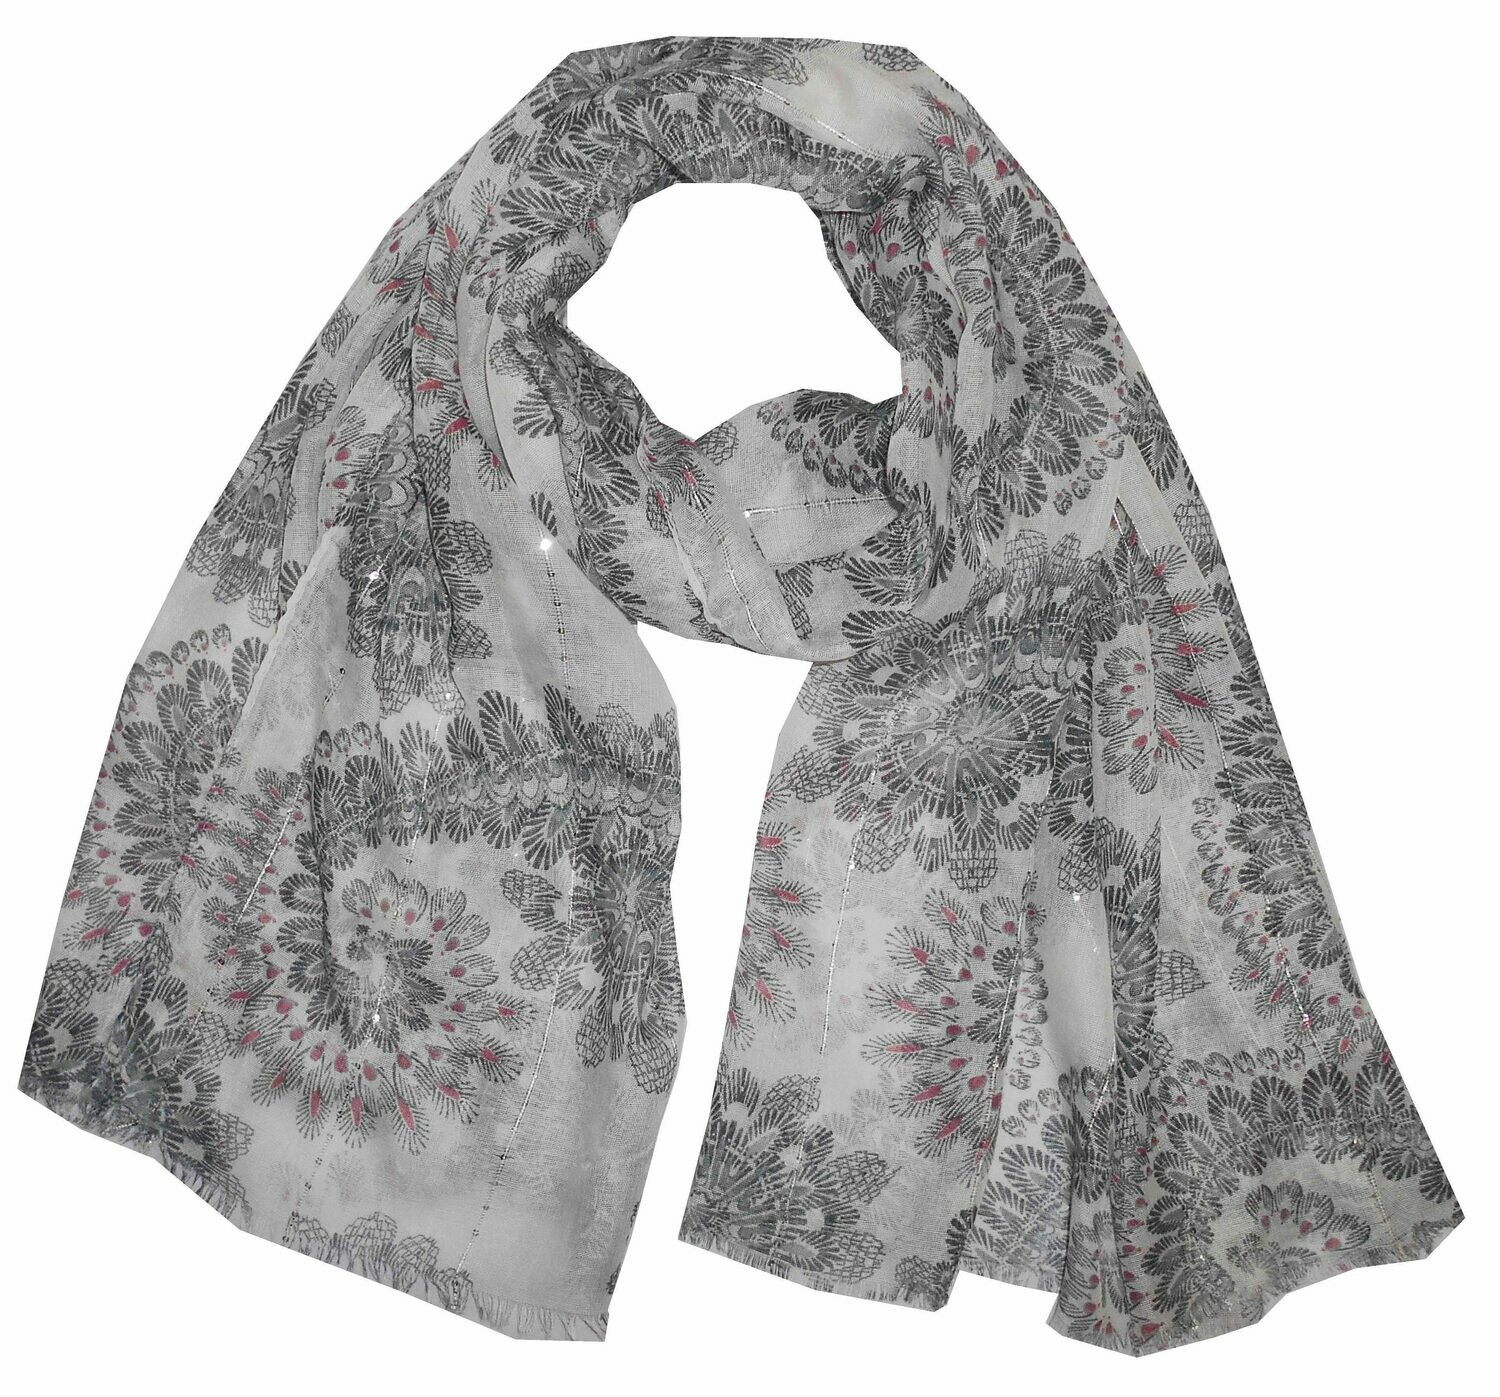 Printed Large scarves in sequins fabric